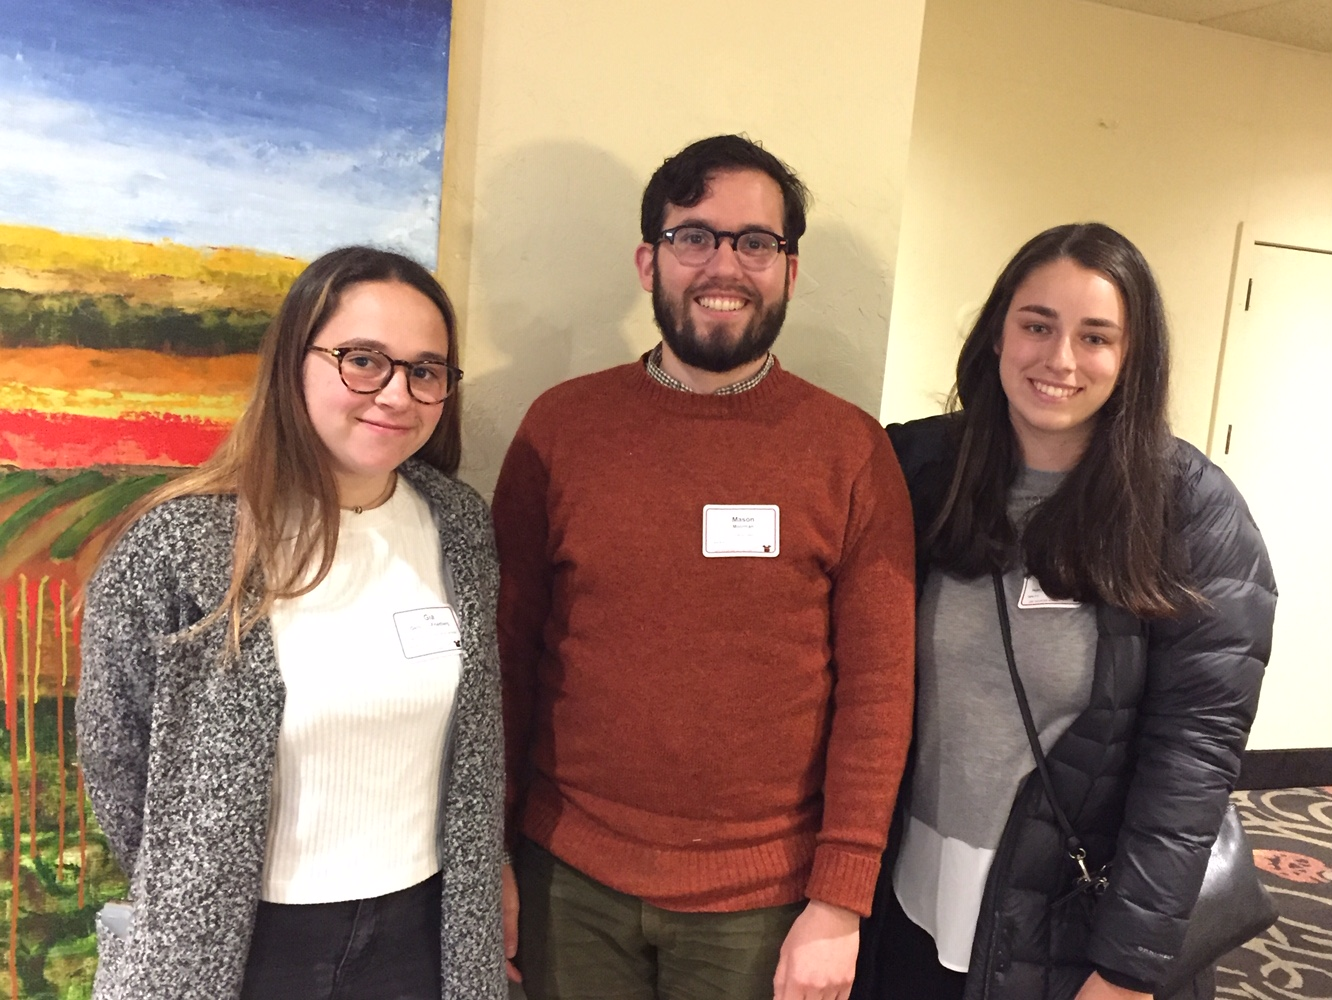 Gia Gershon-Friedberg and Rachel Rozenfeld join Looking Glass Development Coordinator Mason Moorman (center) for a photo after the United Way luncheon.